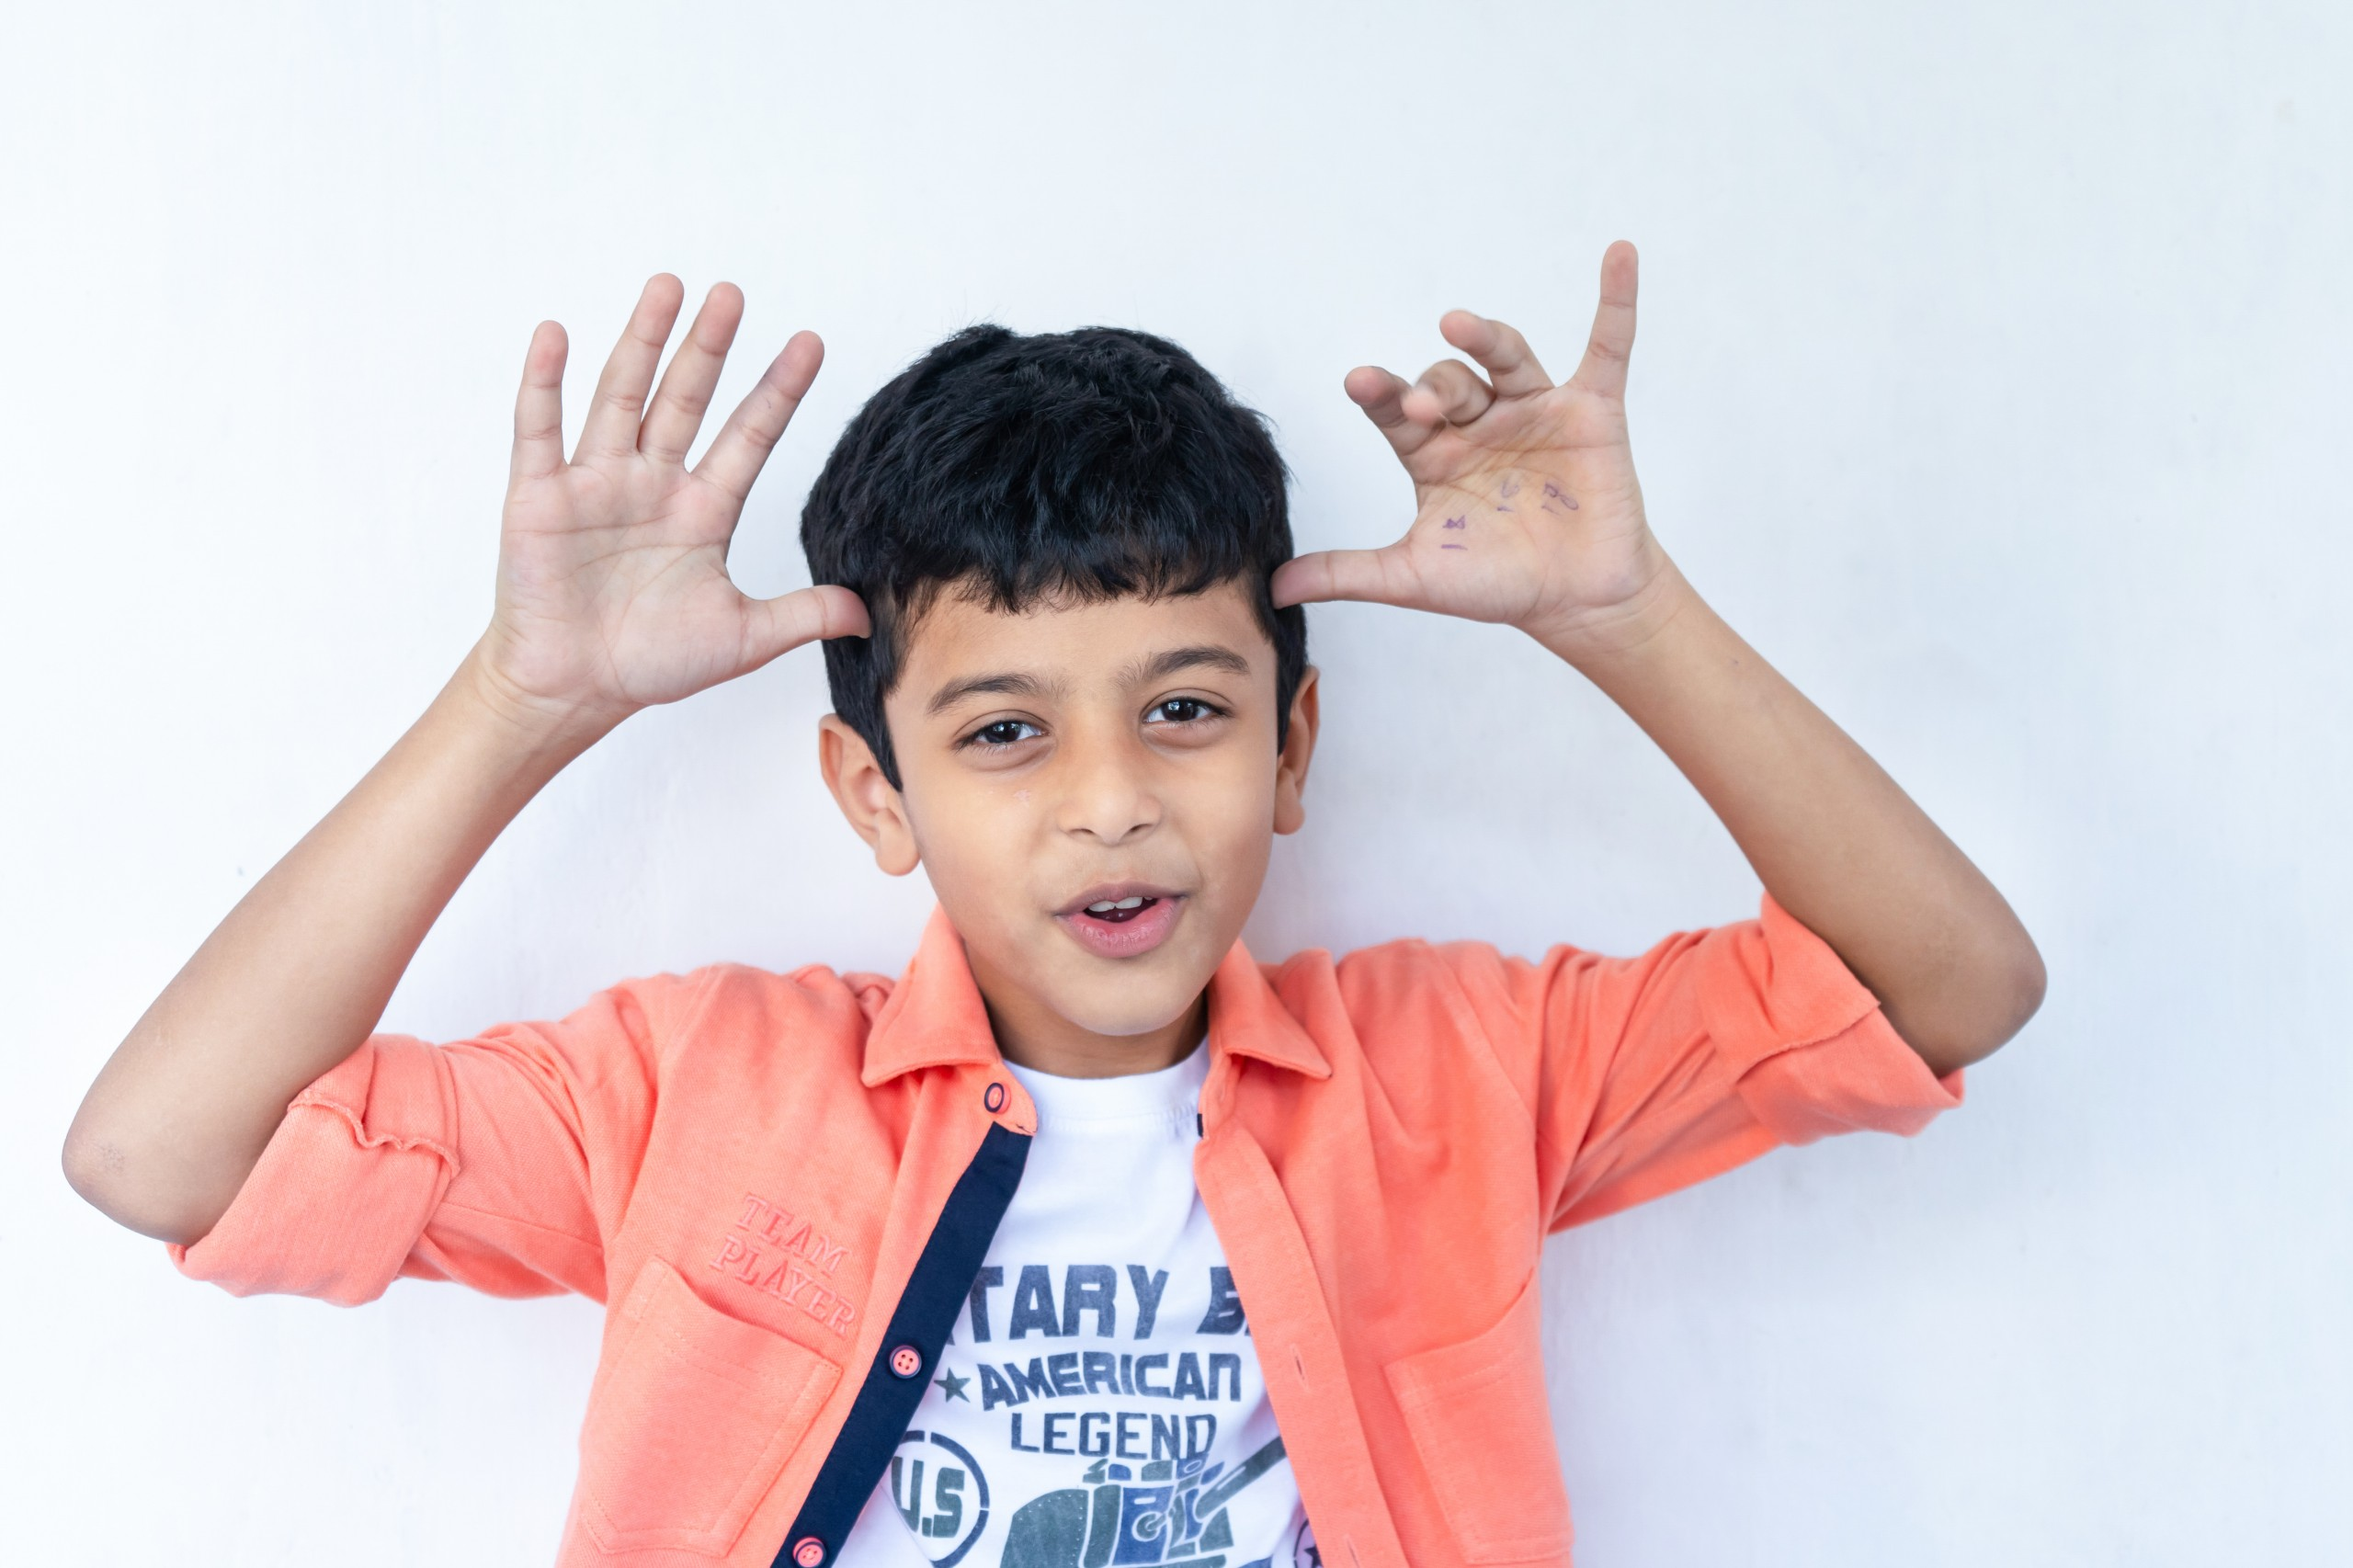 Smiling boy making a gesture